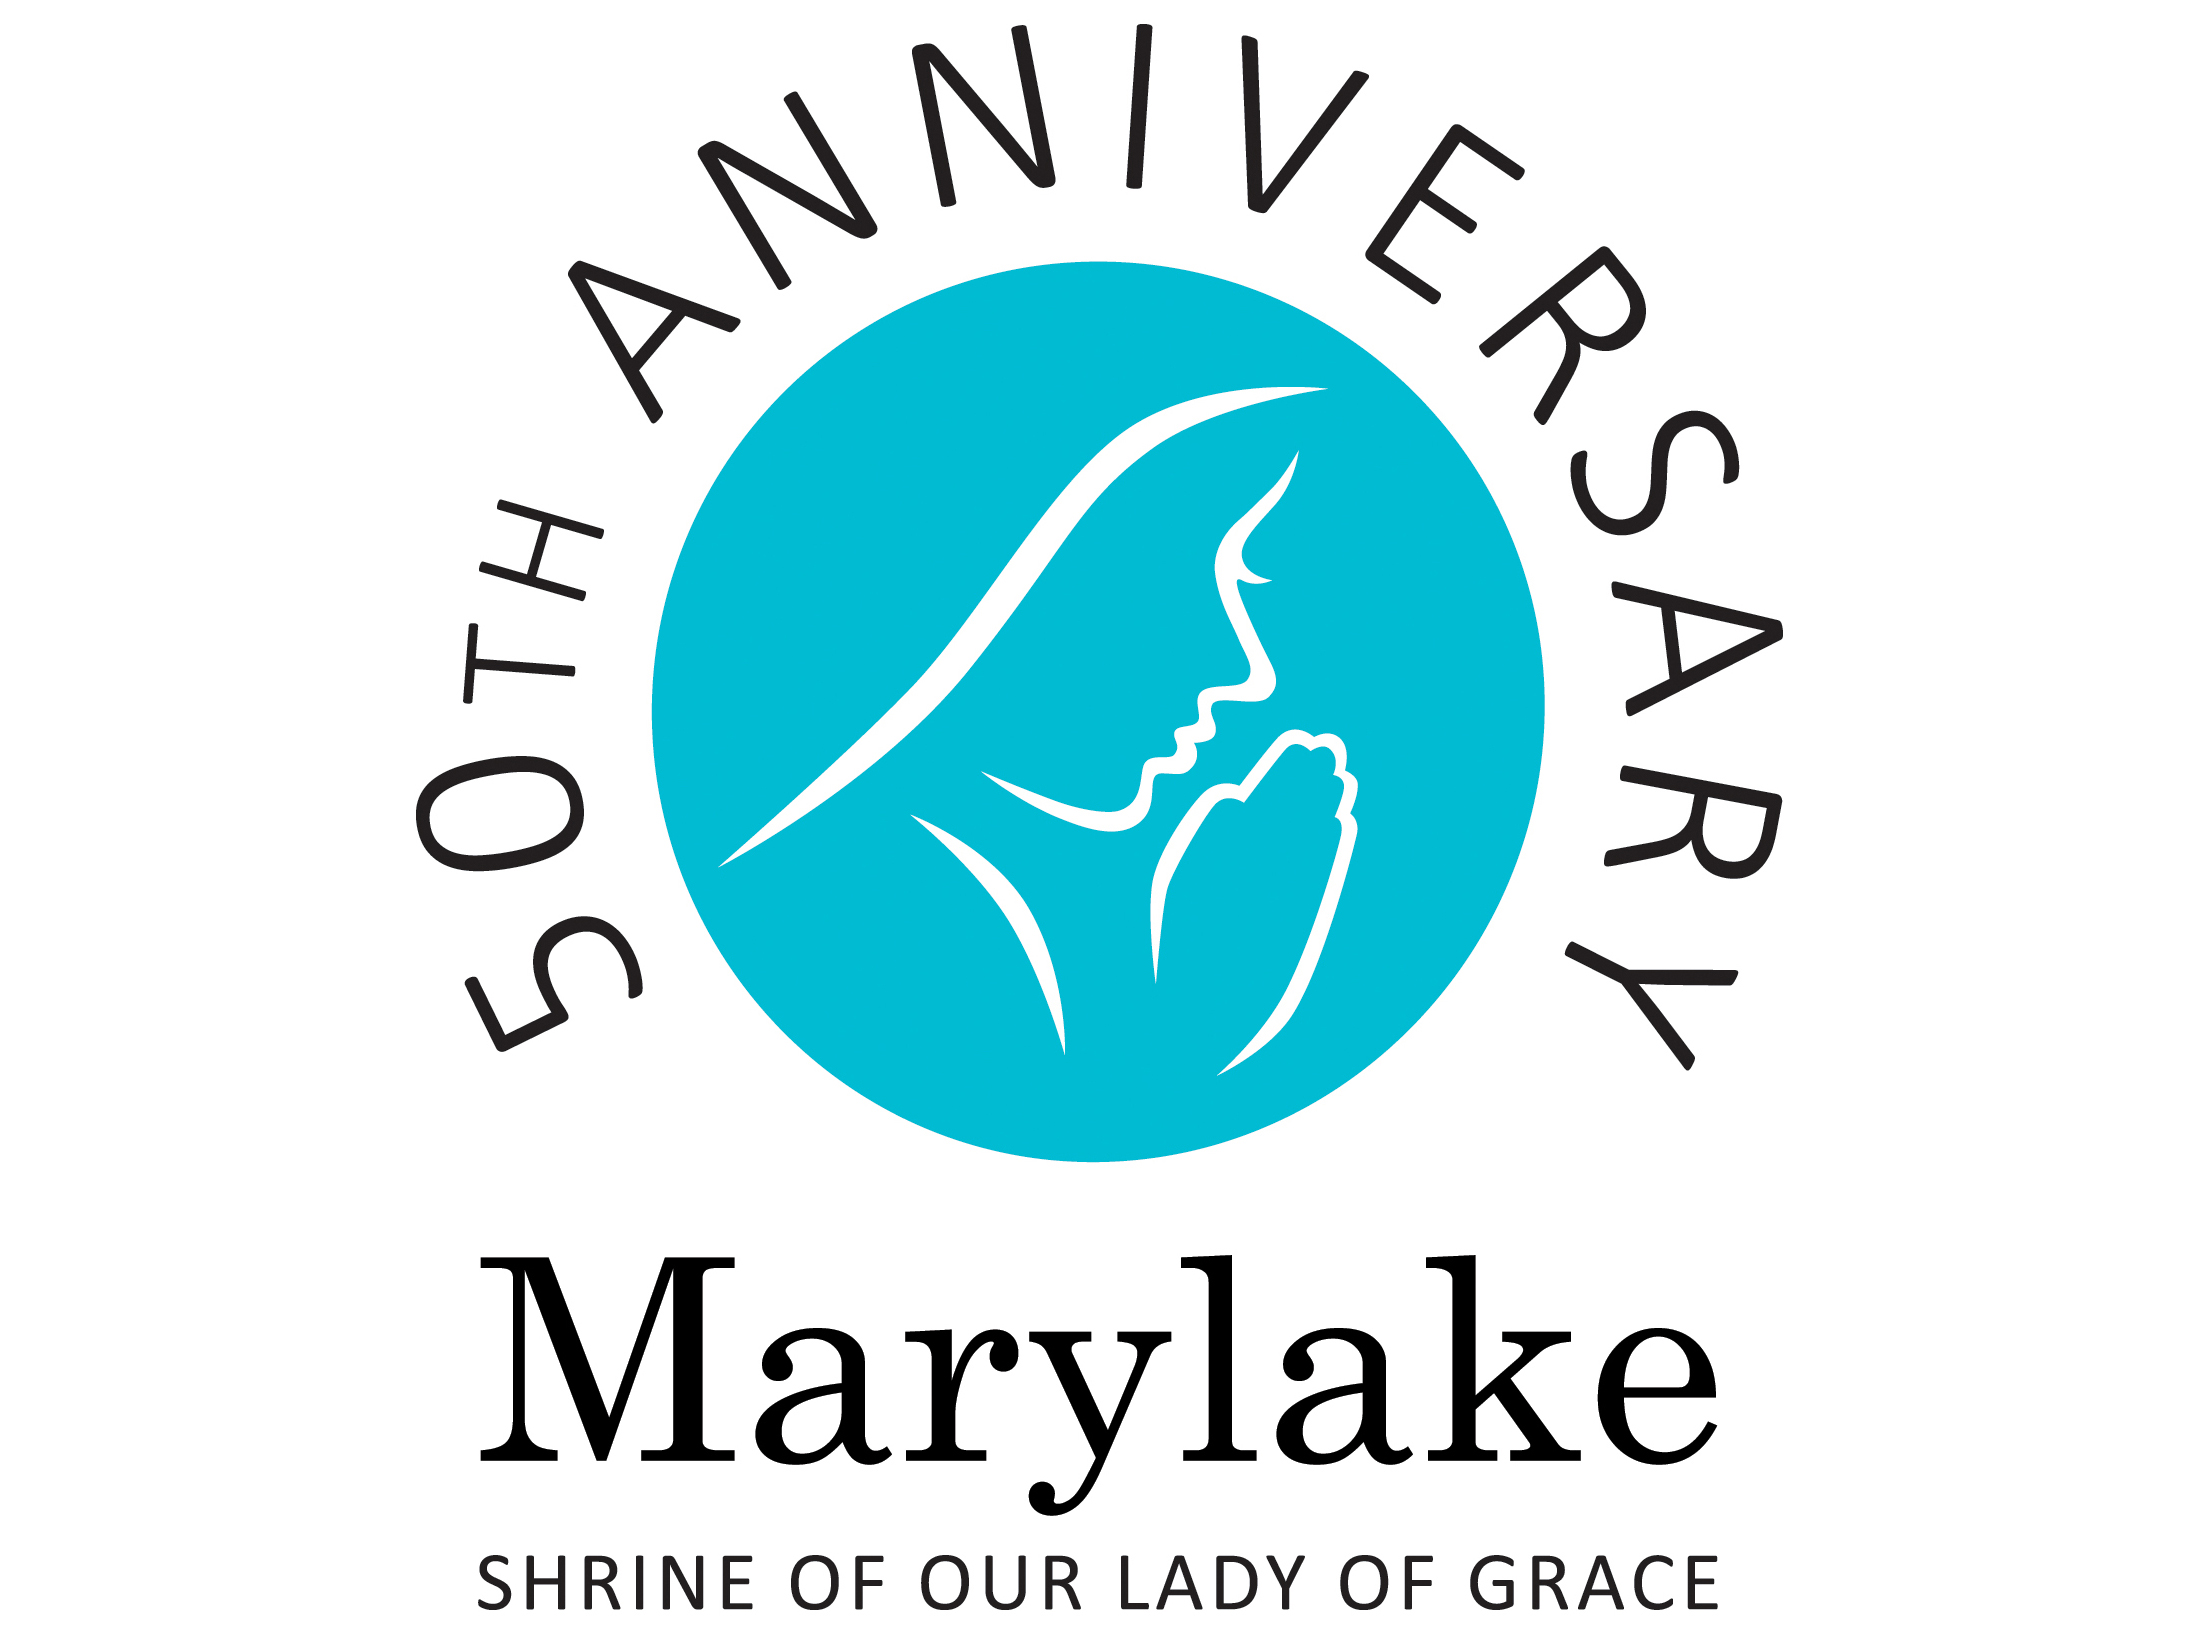 Marylake's 50th Anniversary, 2014  On November 14, 2014, the Shrine of Our Lady of Grace at Marylake held a Gala to celebrate our 50th Anniversary and to re-ignite enthusiasm for a bold new vision for the next 50 years.